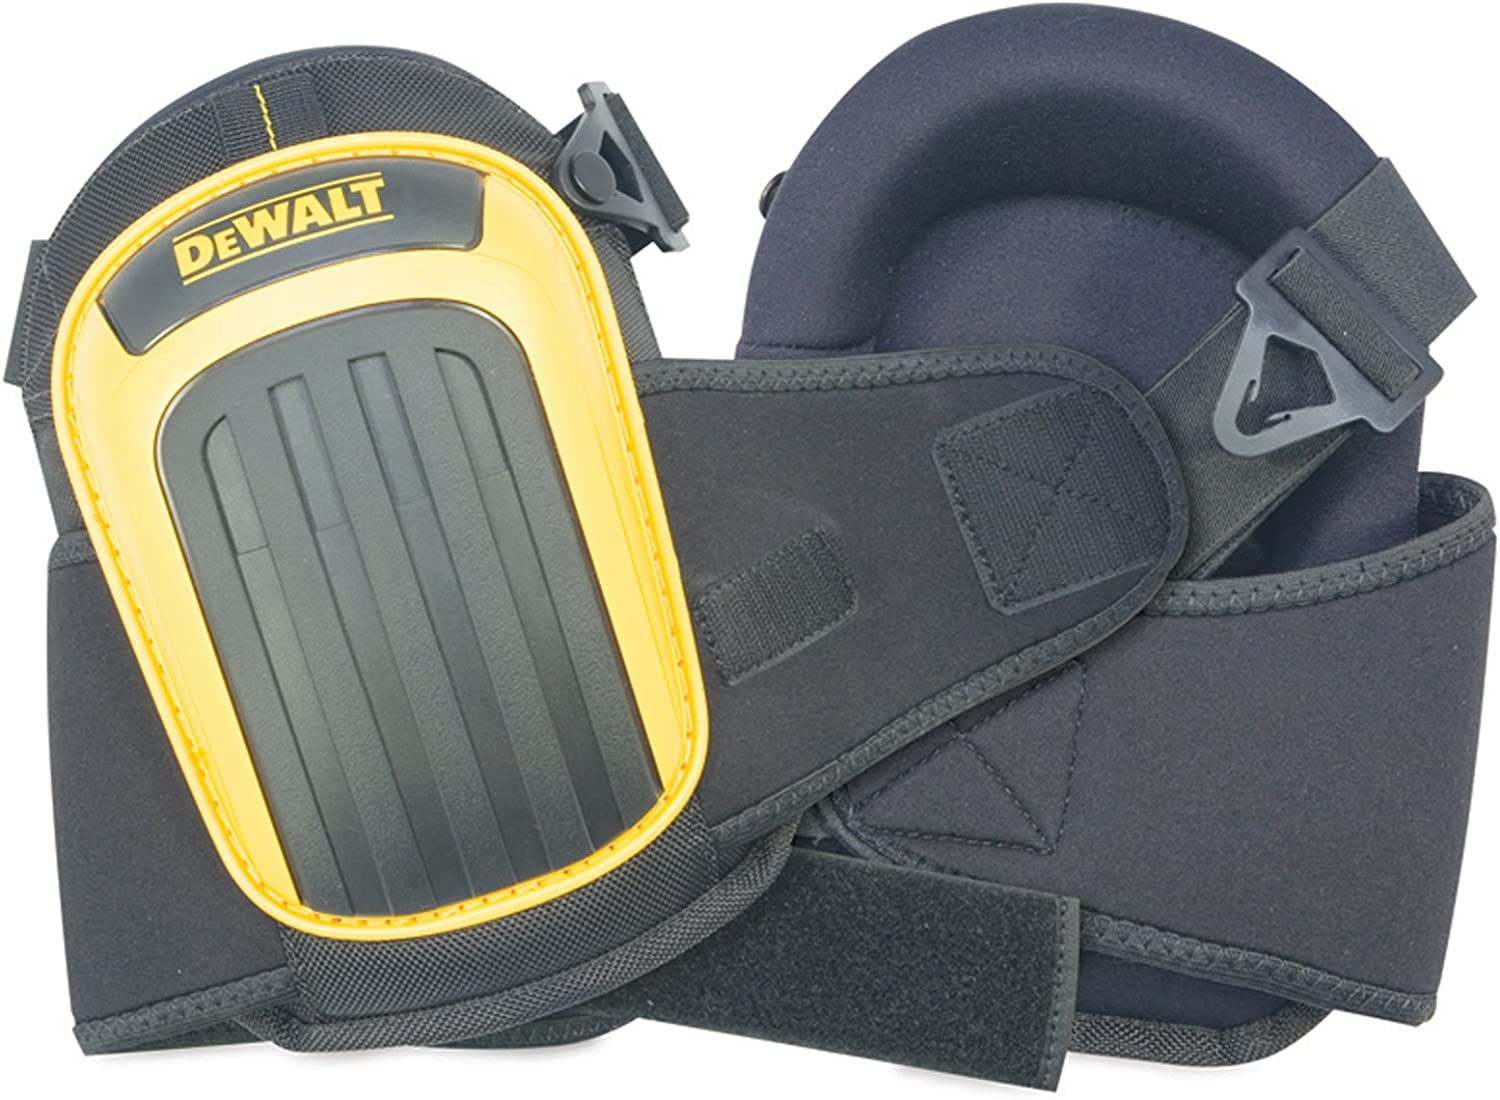 Image of two knee pads with yellow and black color cap, with word DeWALT seen on the front side.